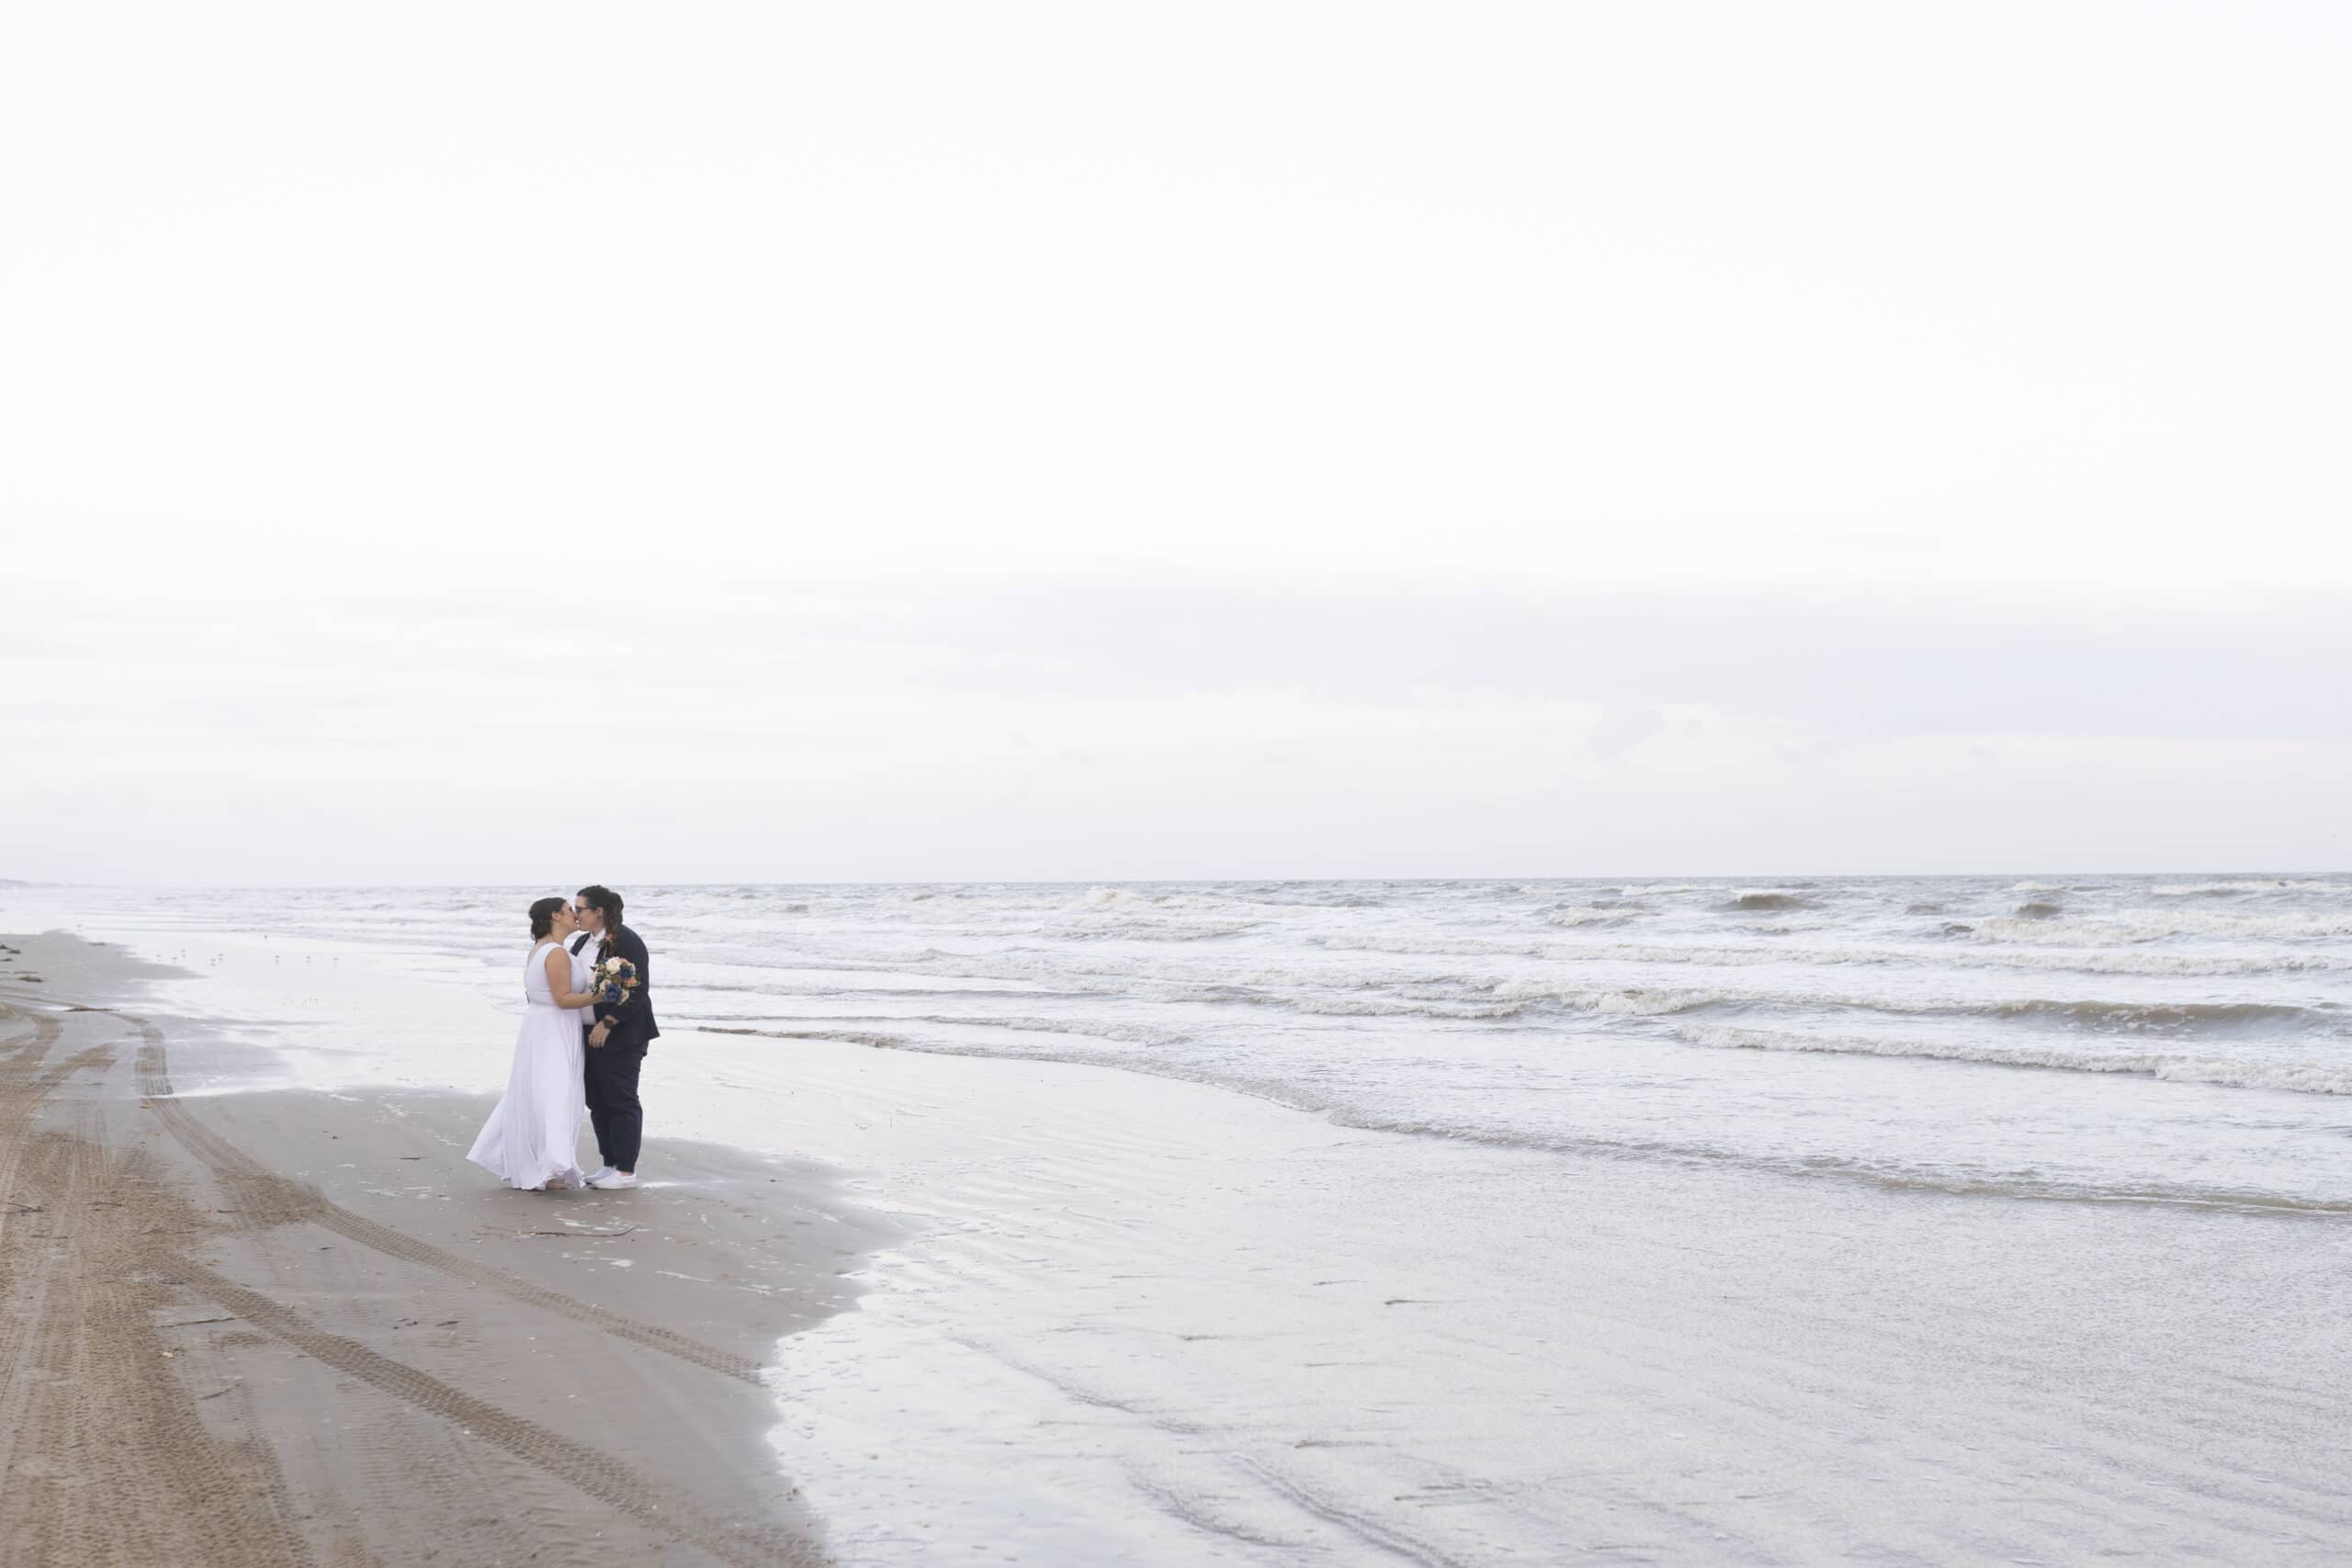 Houston beach LGBTQ+ wedding